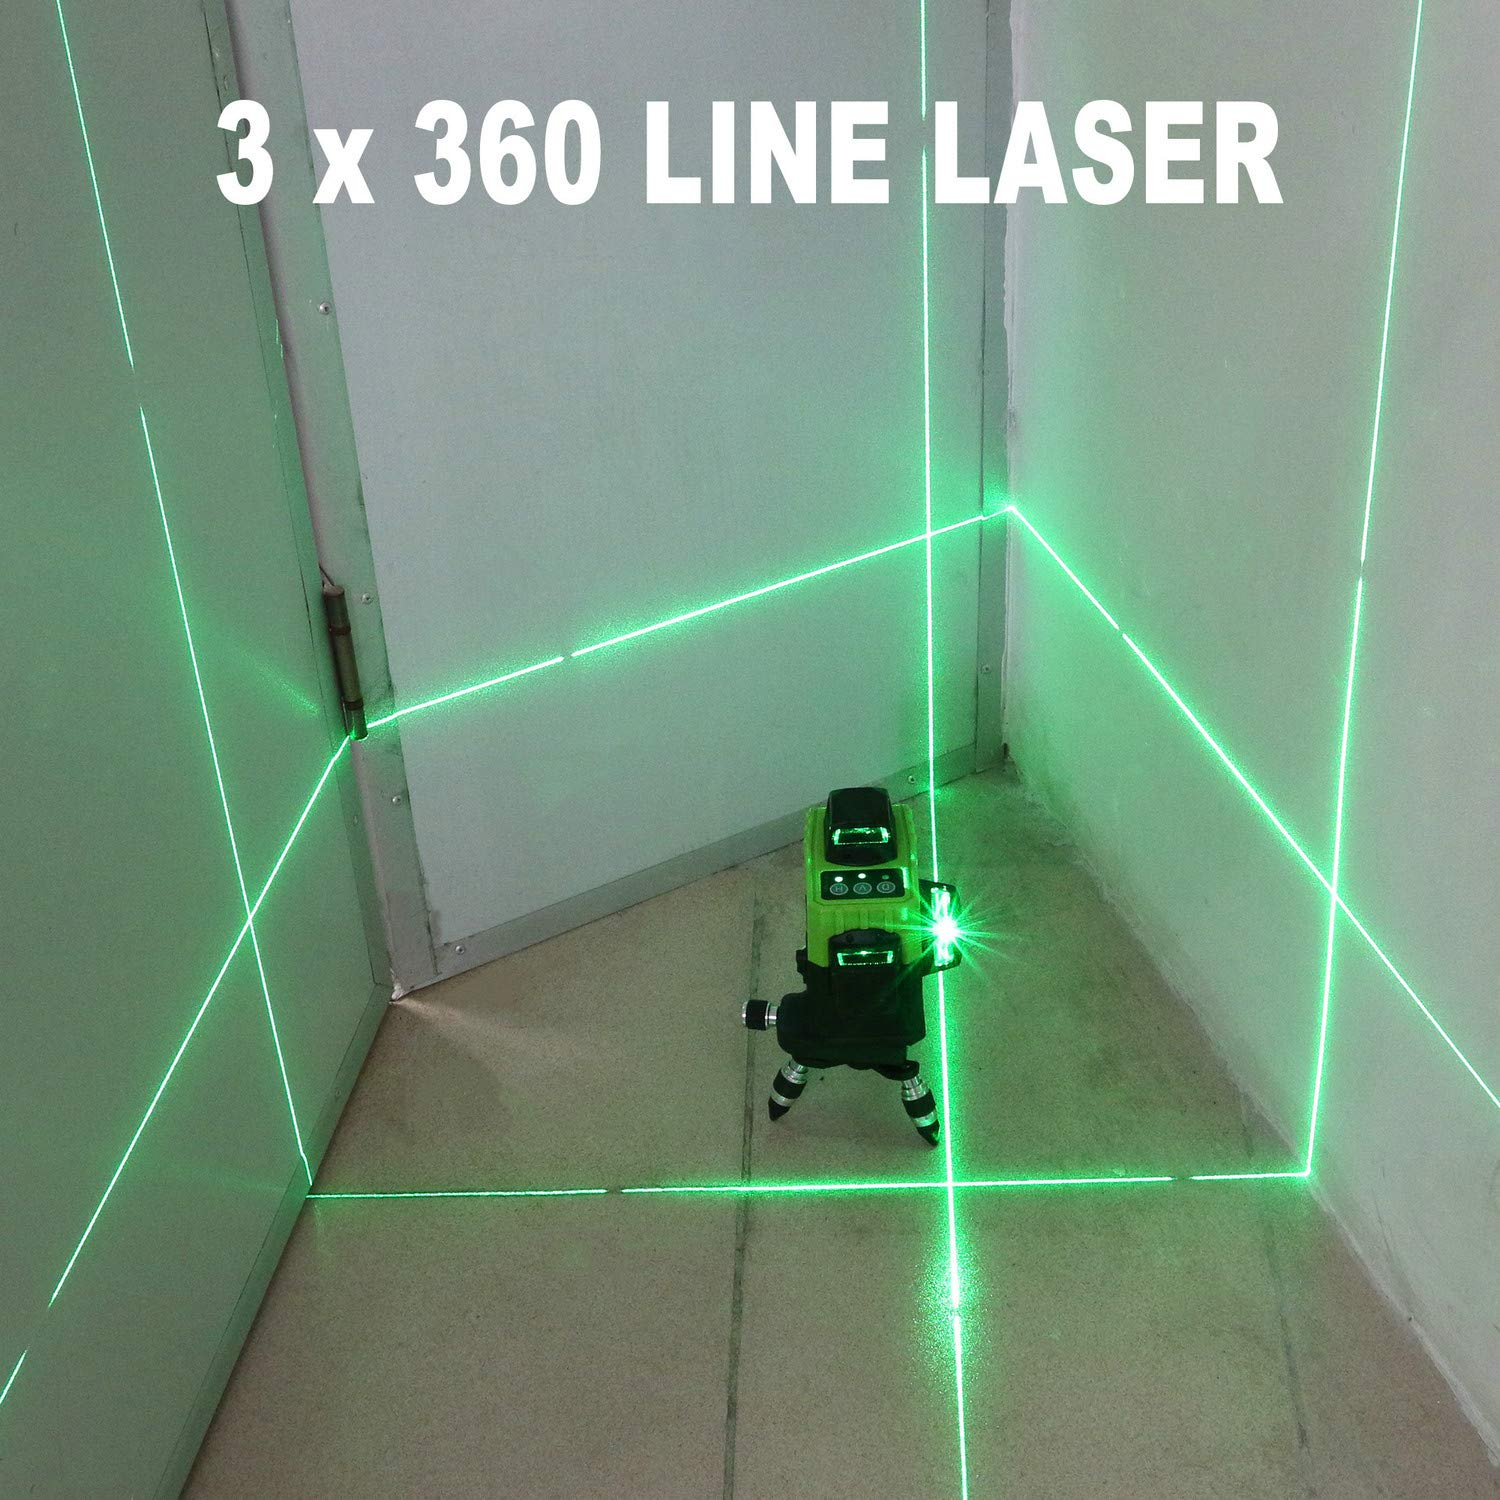 Dingchao Self-Leveling Three-Plane 3 x 360 Green Line Laser Level,with Micro-Adjust / 360 Degree Pivoting Base, Hard Carrying Case,Power Plug Adapter,Multi-functional Laser Leveler Layout Laser Tools by DINGCHAO (Image #4)